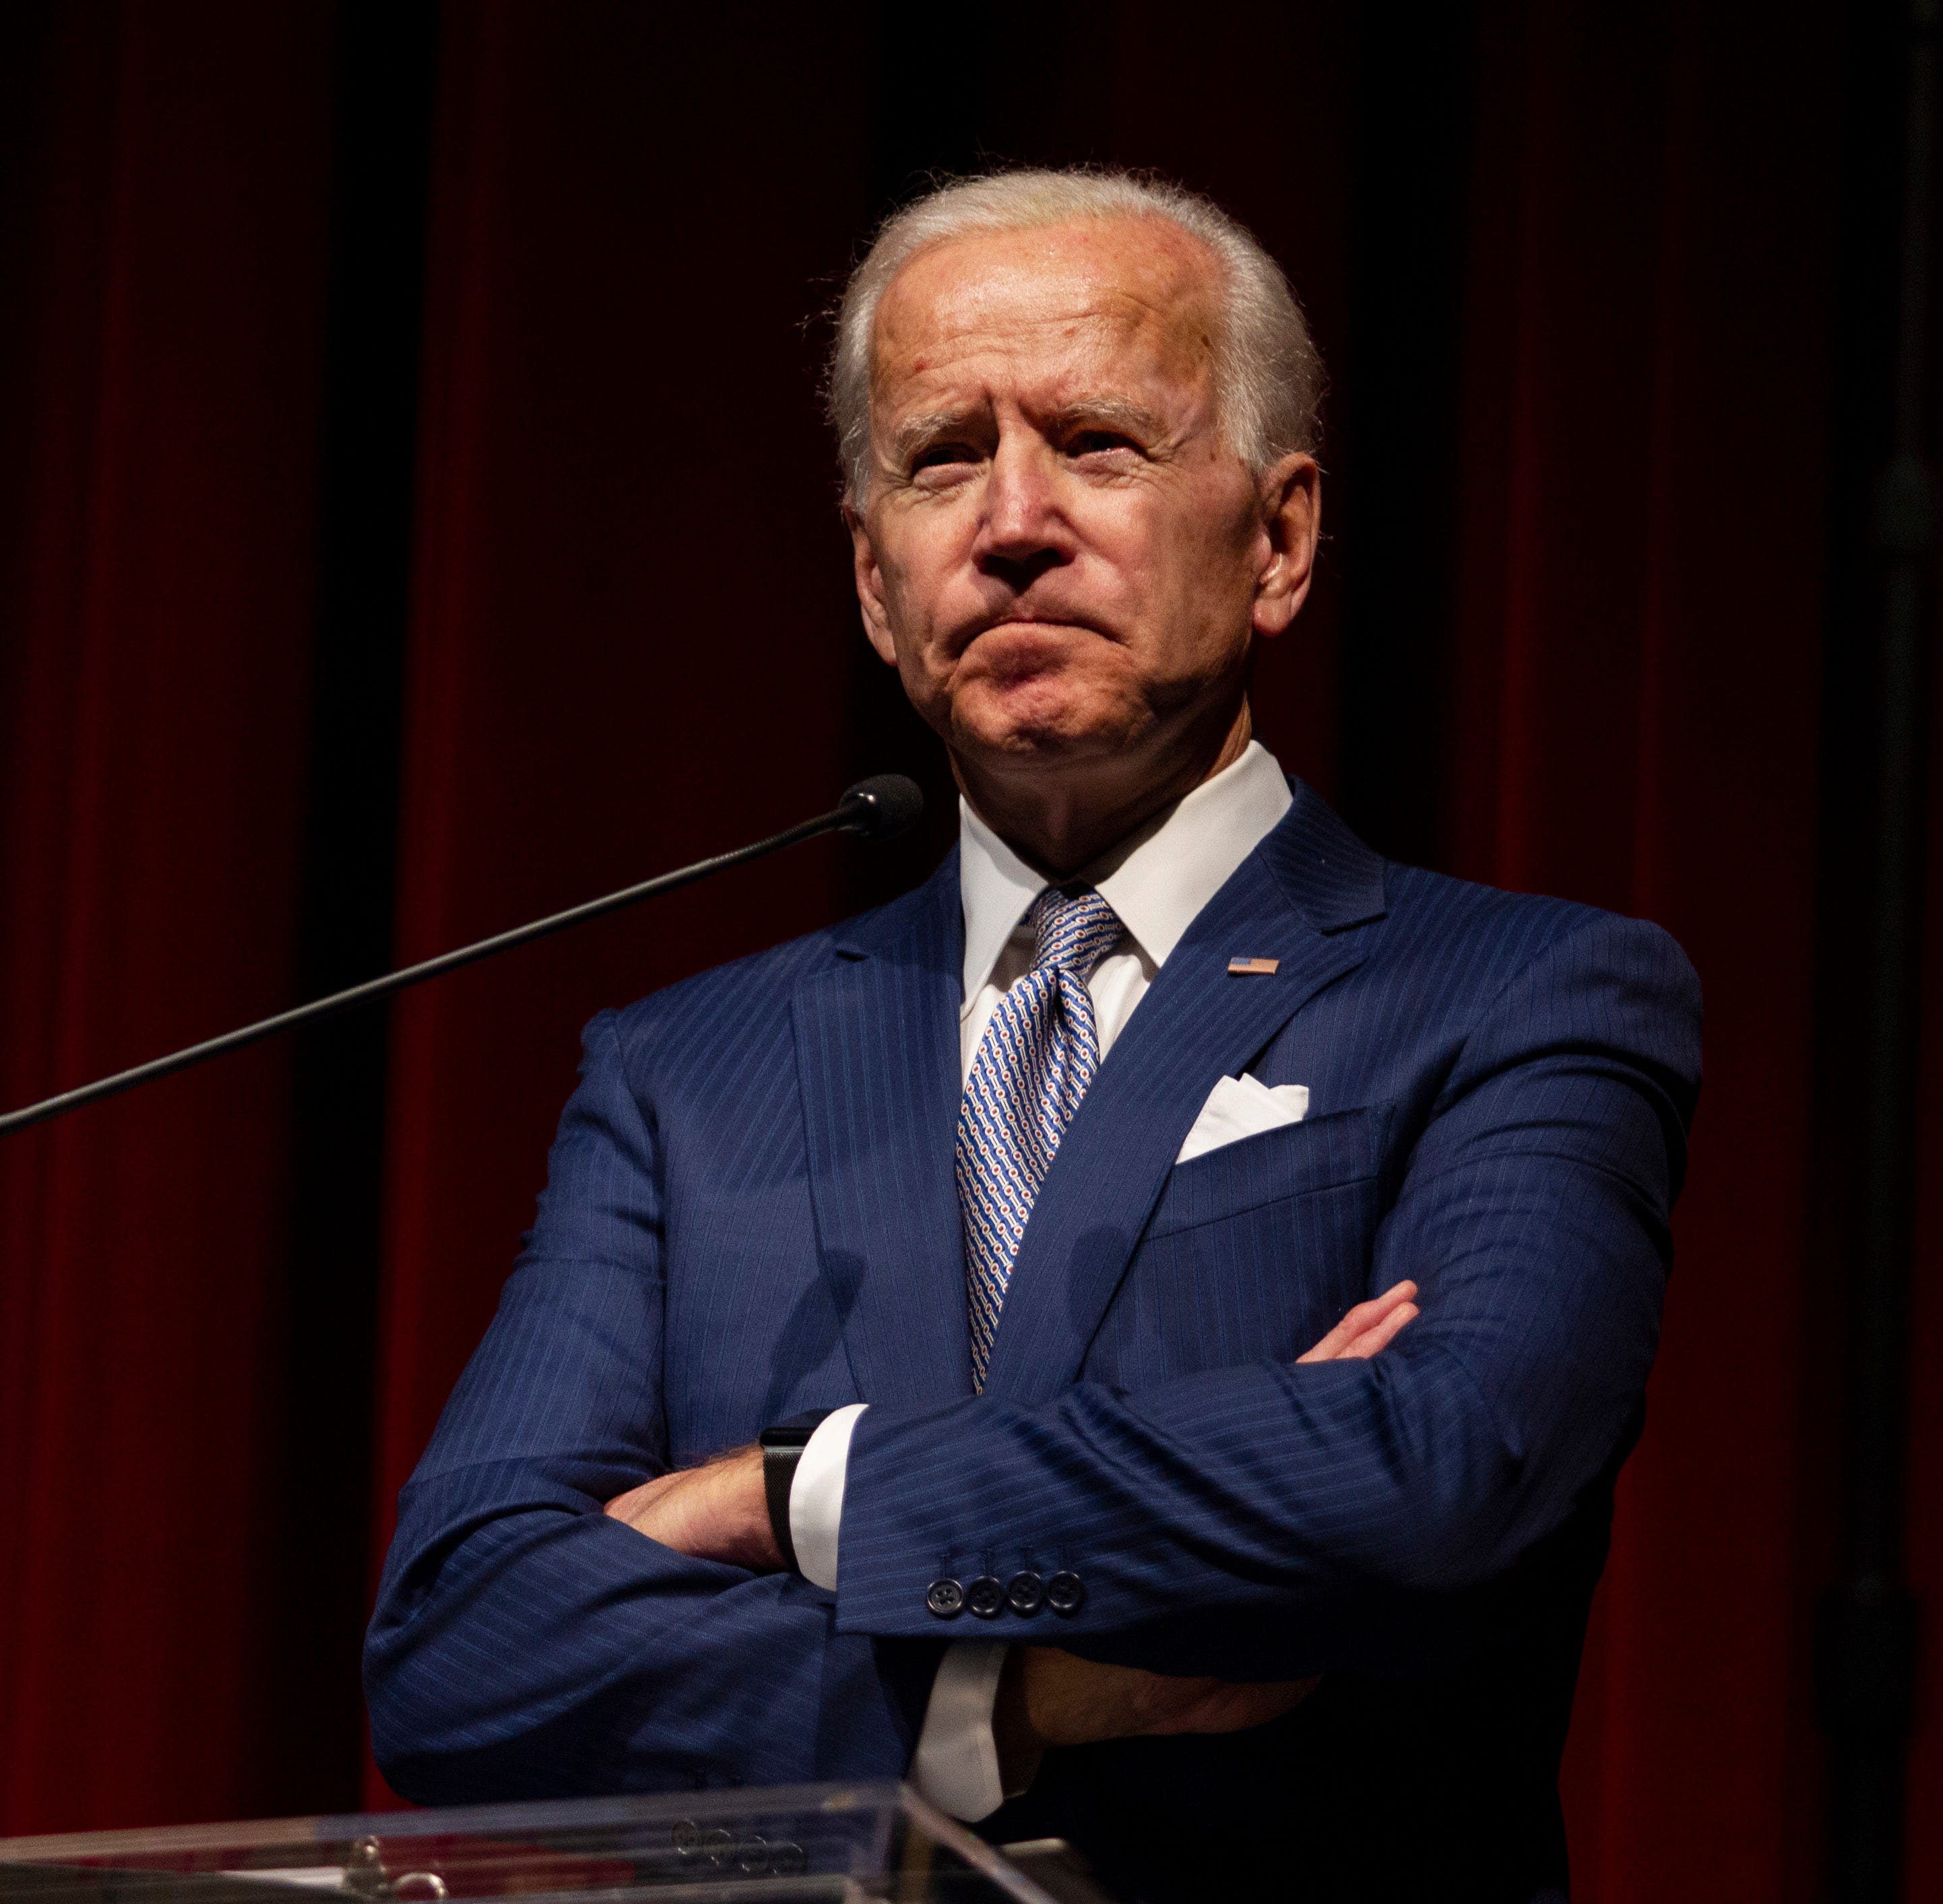 AP source: Joe Biden to meet with family as he ponders 2020